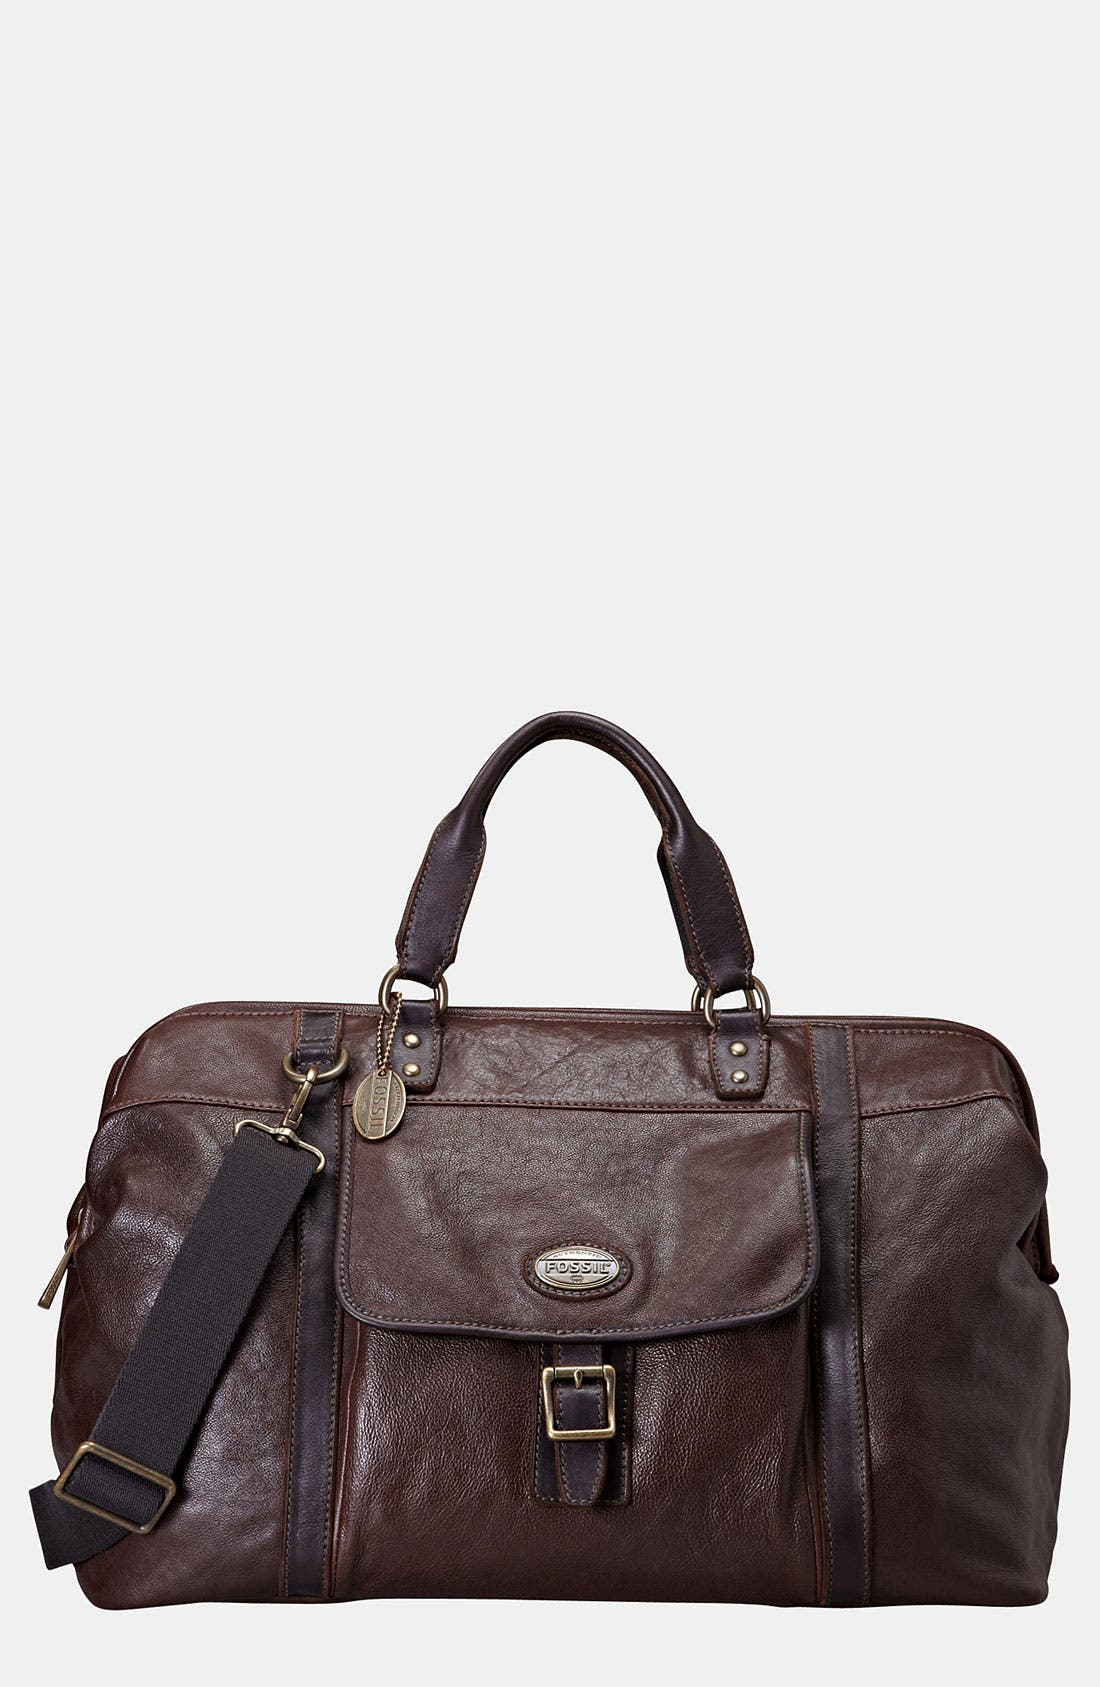 Alternate Image 1 Selected - Fossil 'Estate' Duffle Bag